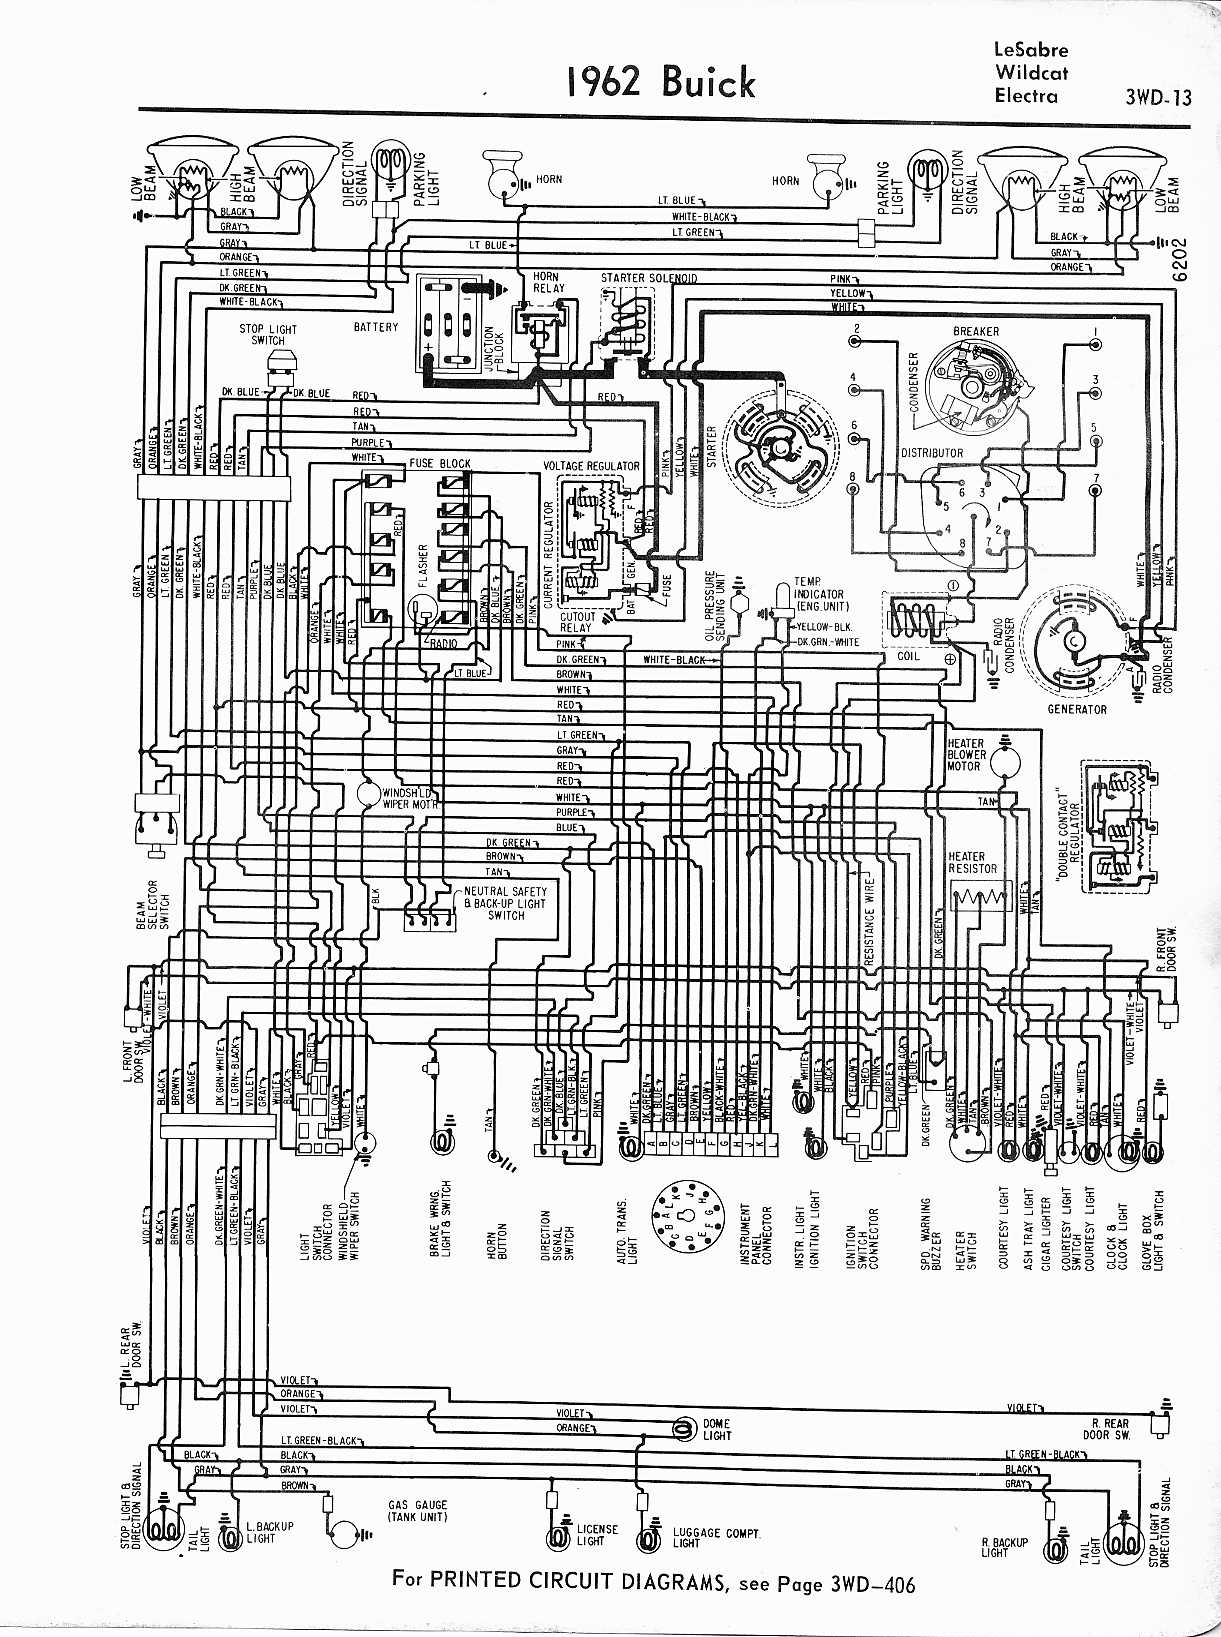 Fuse Diagram 1997 Buick Riviera Wiring Library Harness Cad 1969 Diagrams Box Rh Fds Co Uk 1971